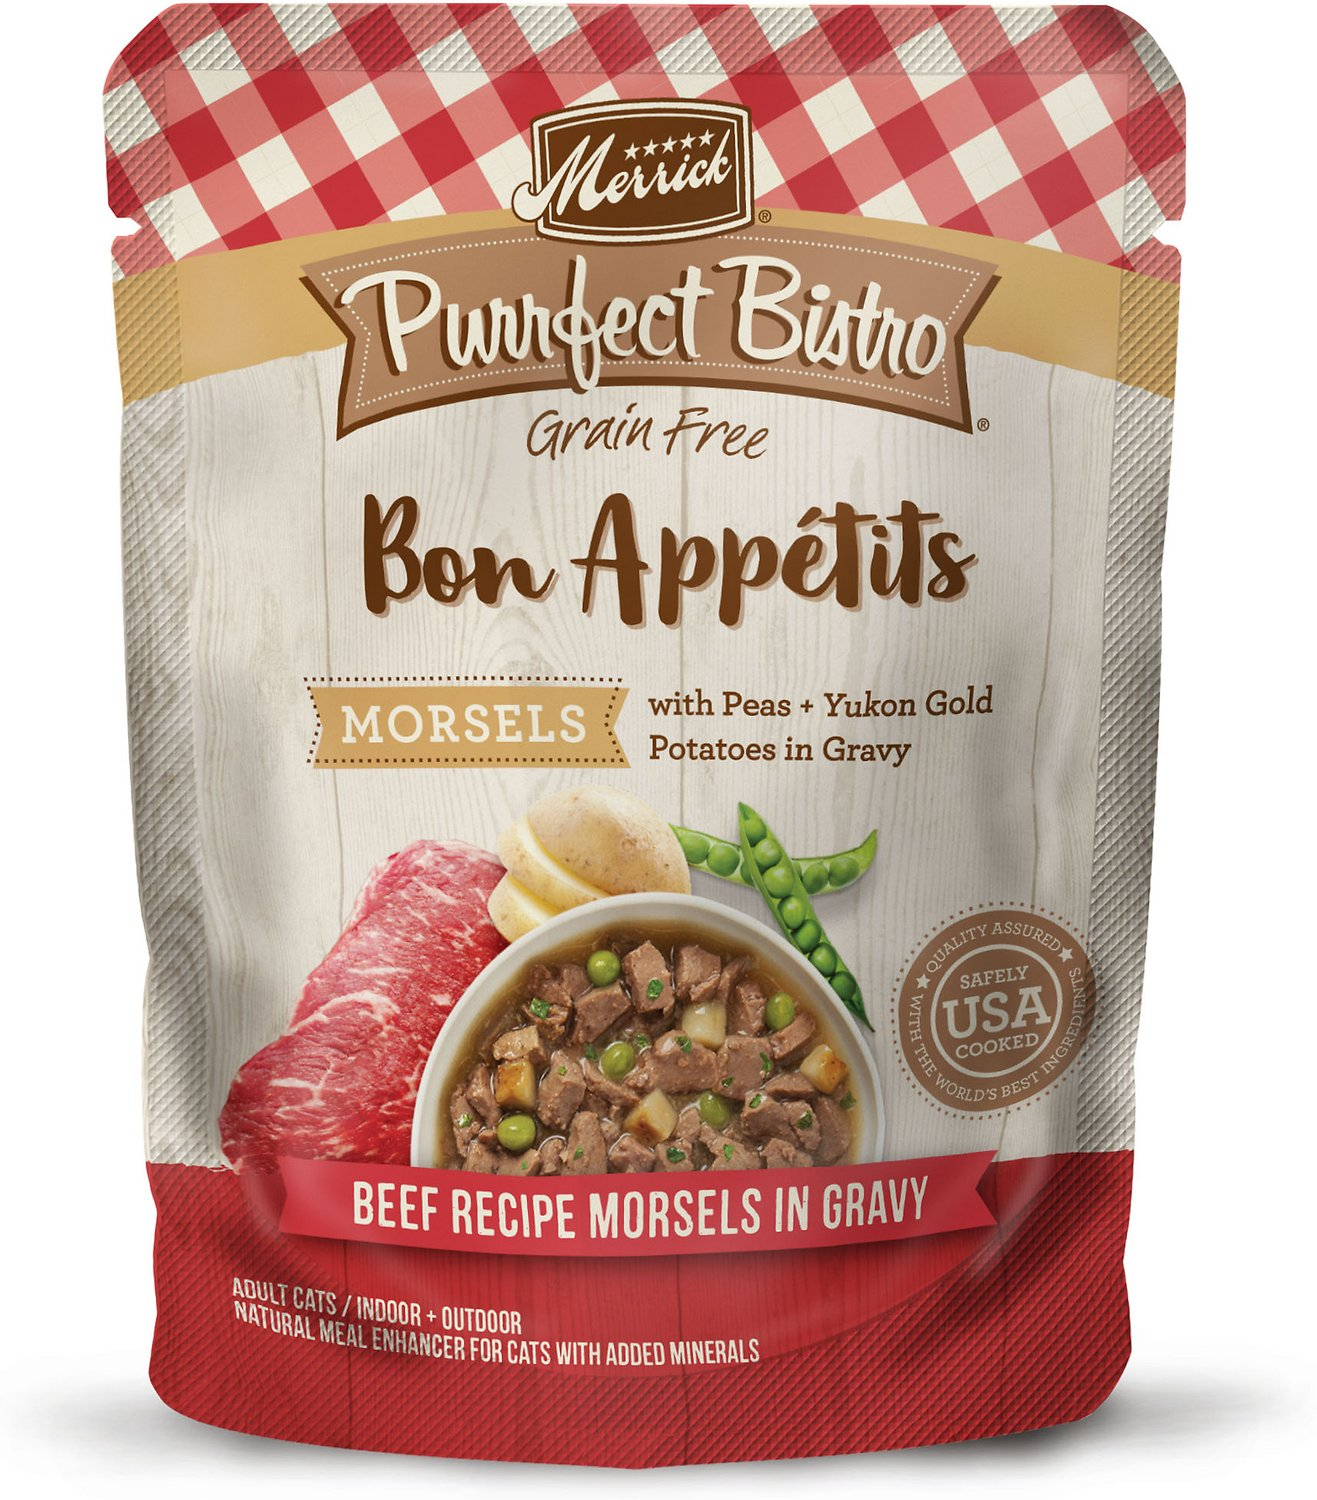 Merrick Purrfect Bistro Bon Appetits Grain-Free Beef Recipe Morsels in Gravy Adult Cat Food Pouches, 3-oz